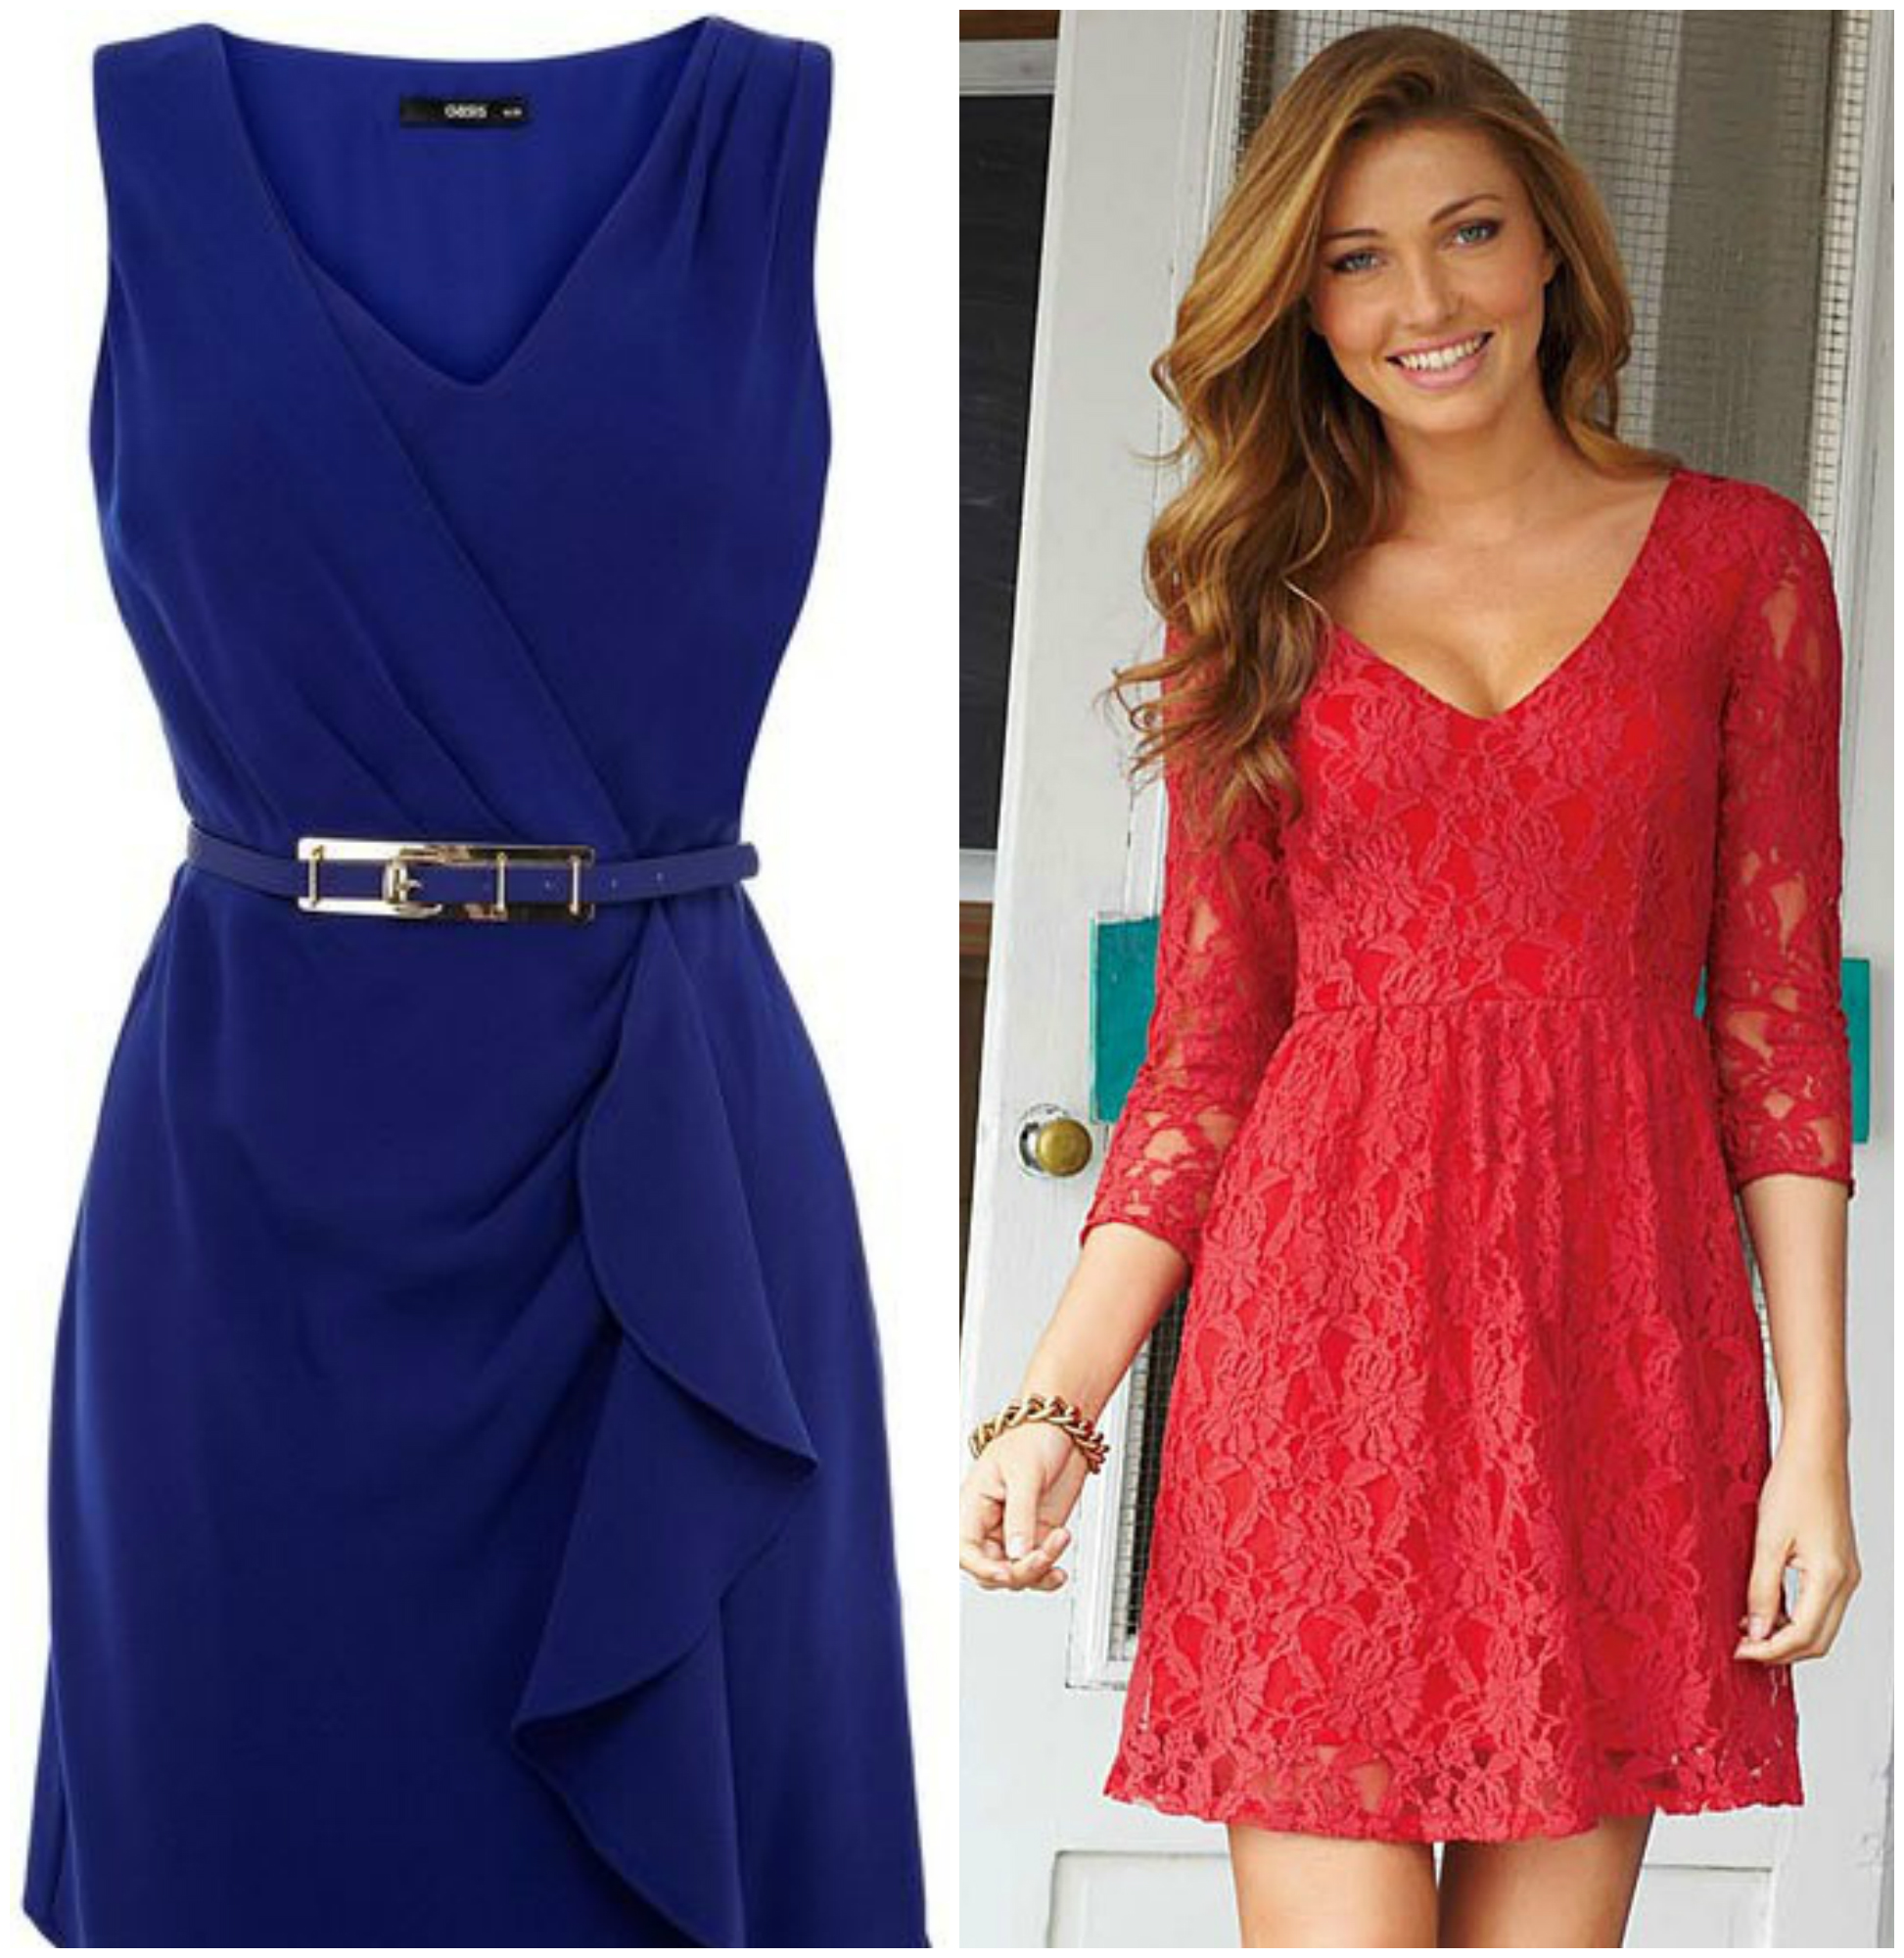 Online dating what to wear on first date